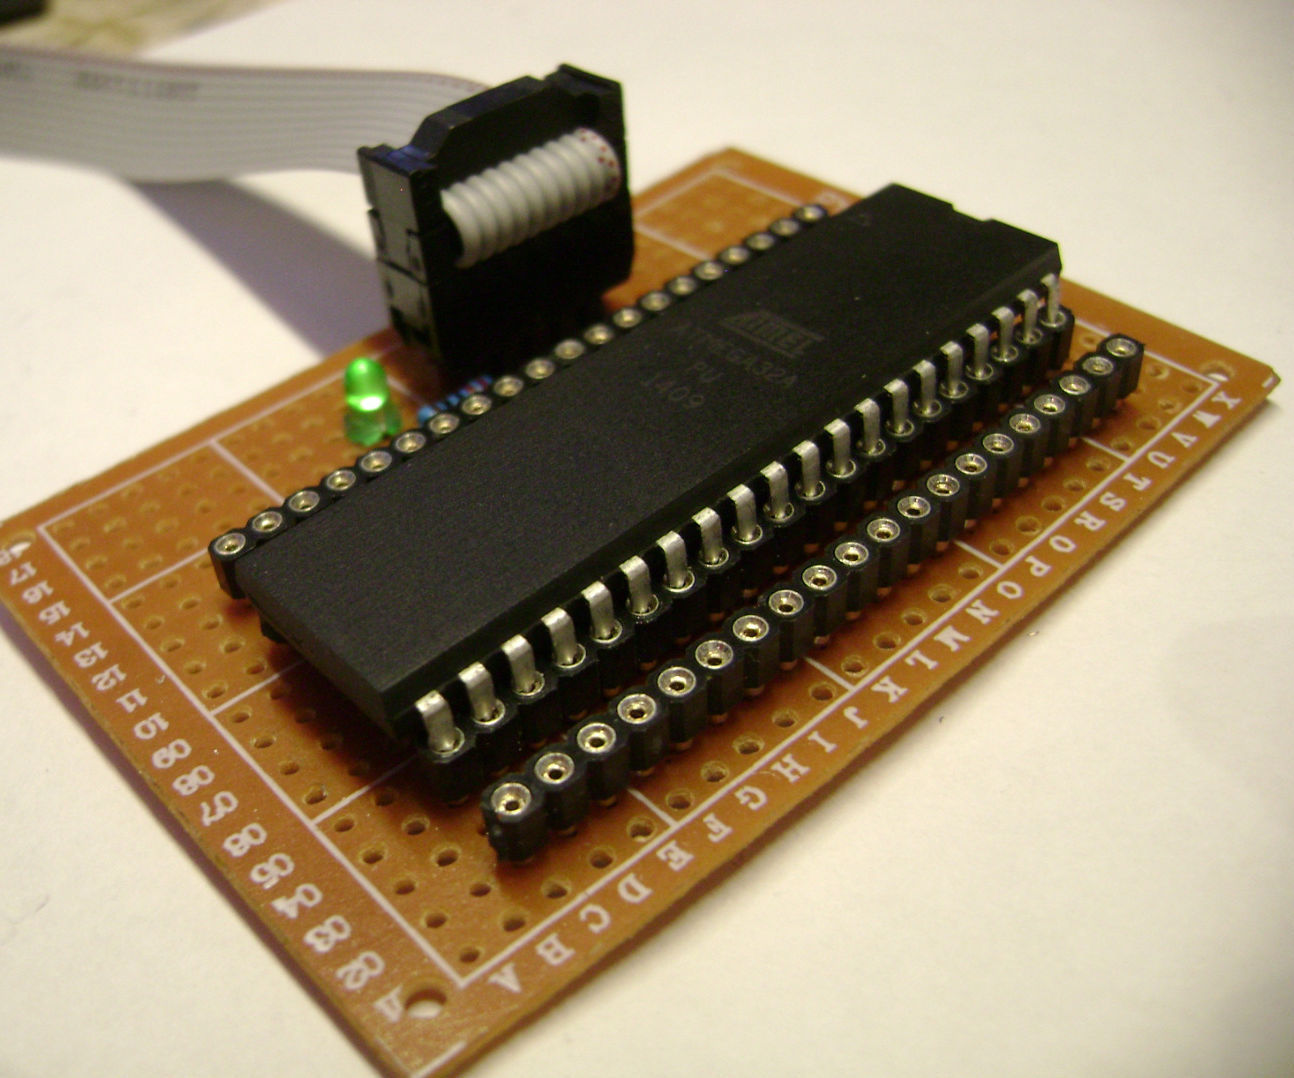 DIY Atmel microcontroller development board